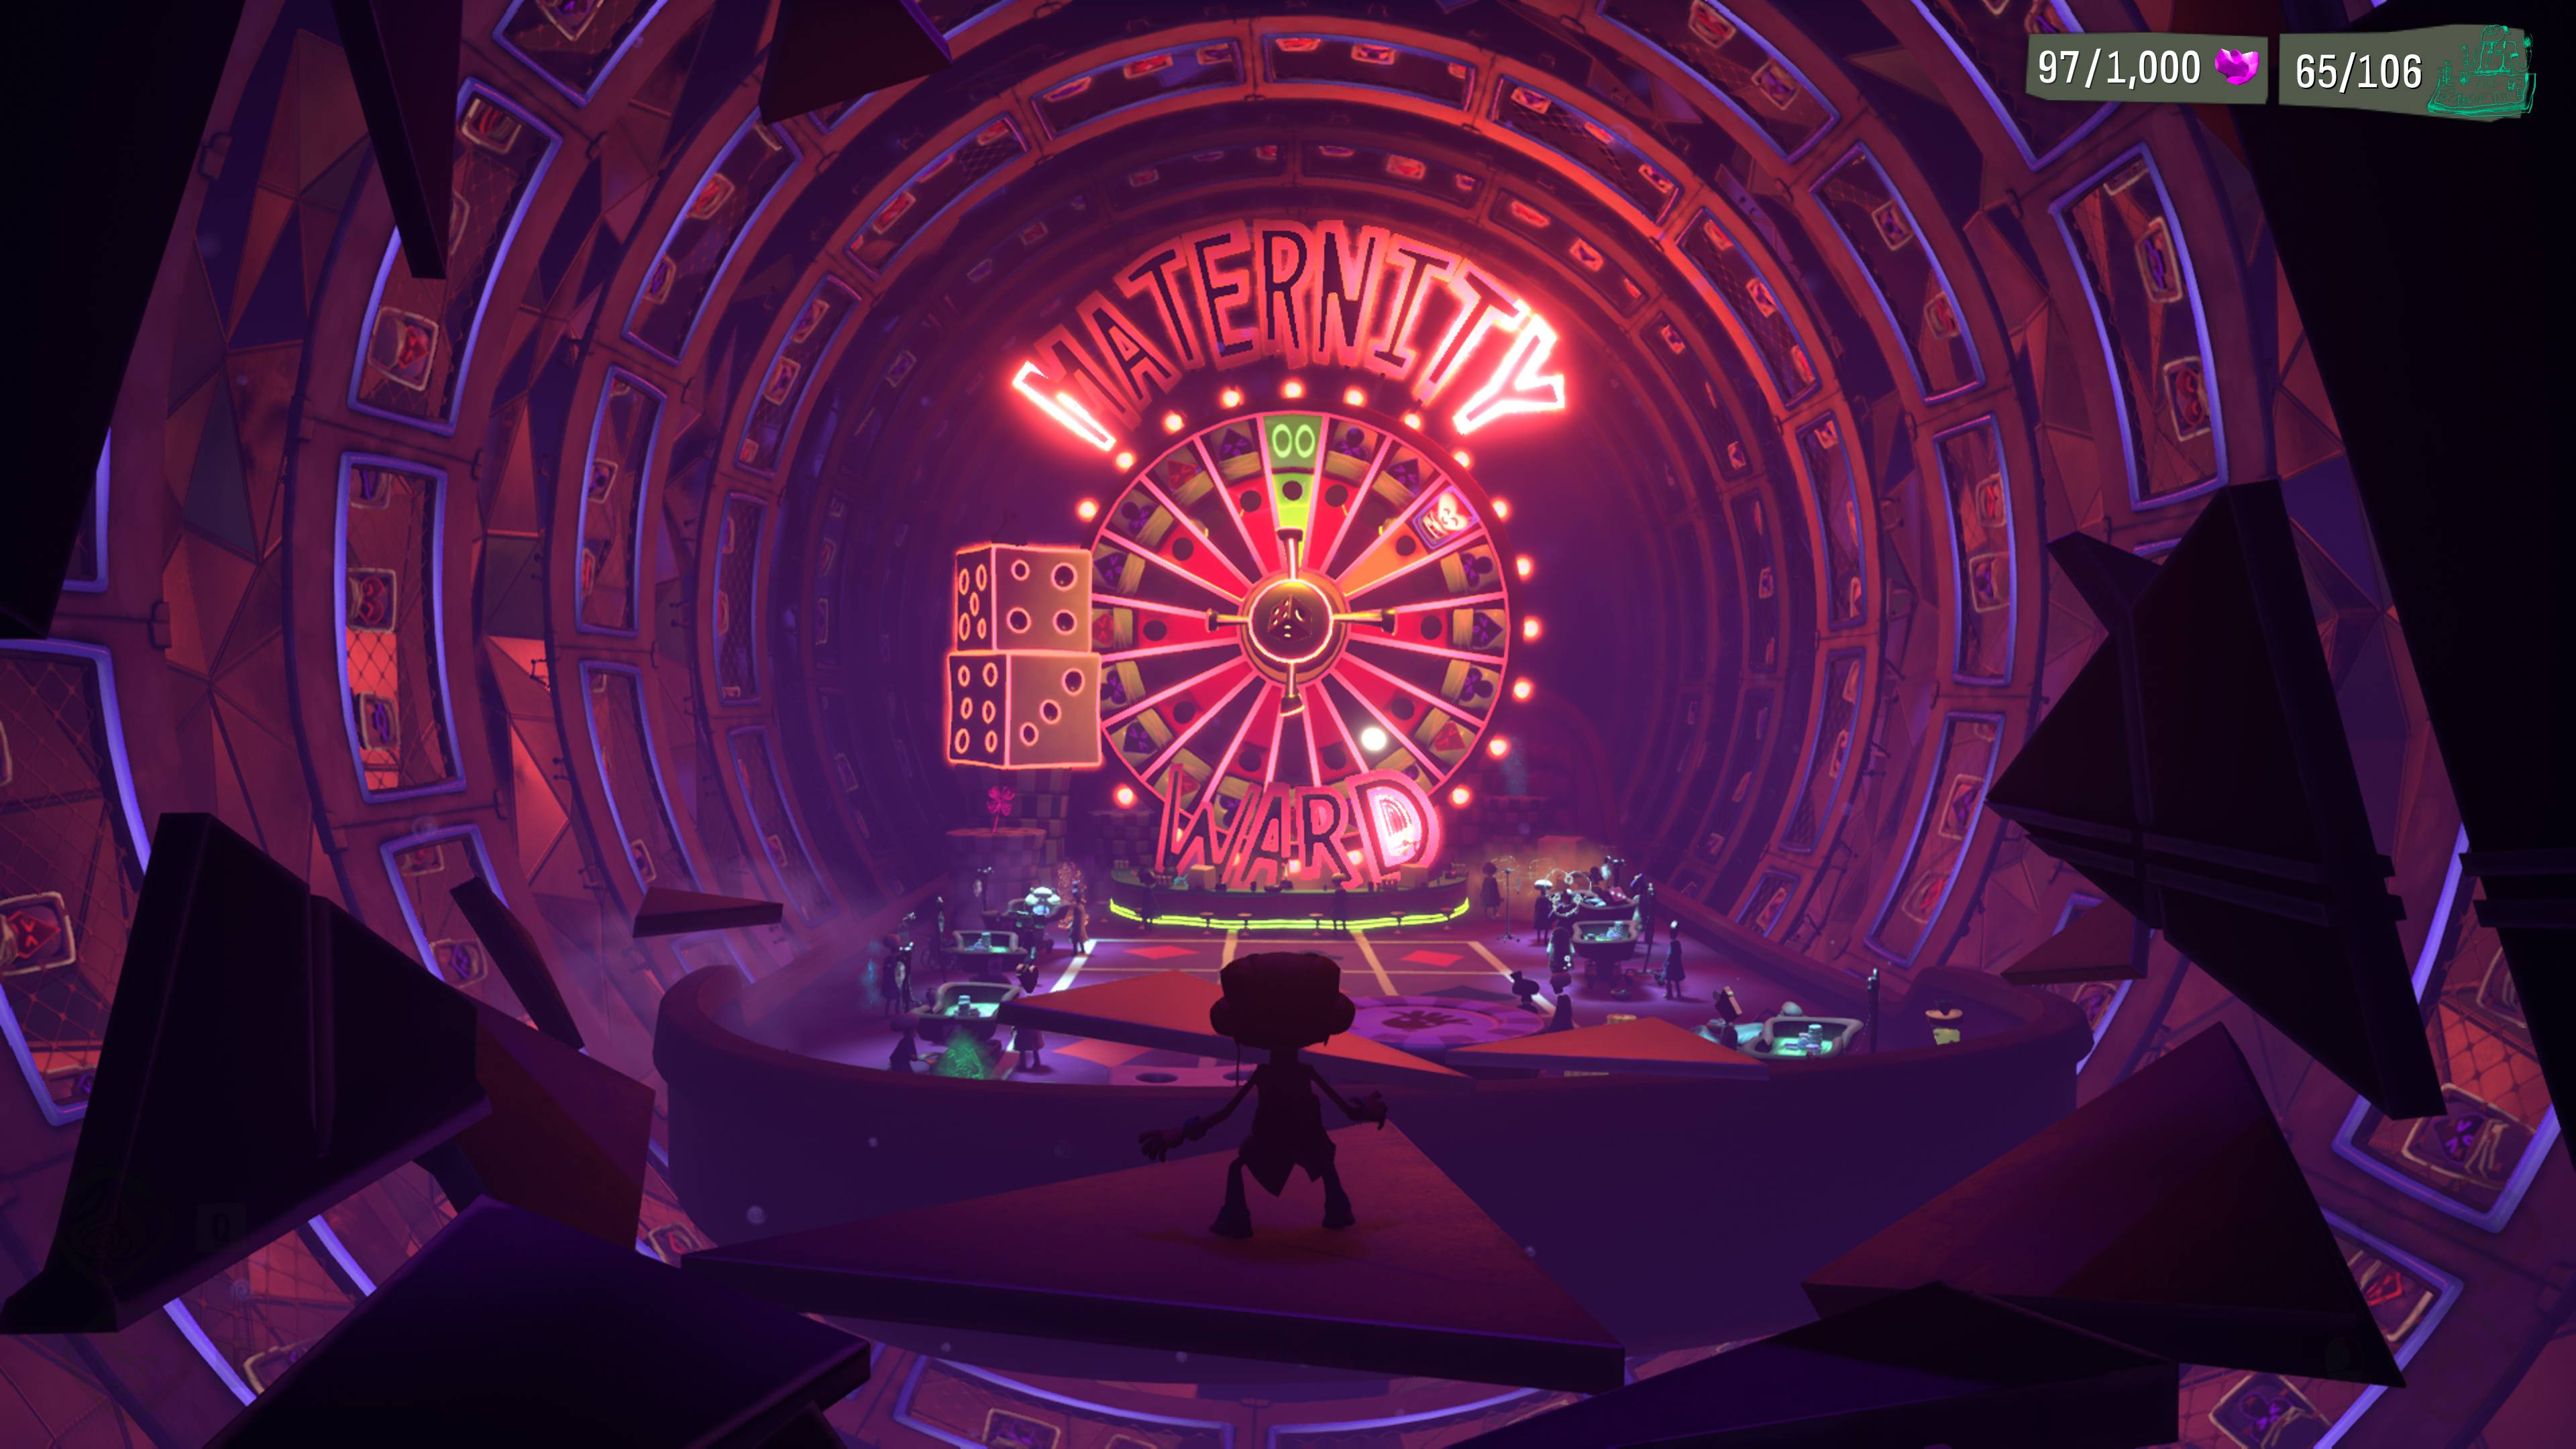 Raz enters a room with a giant roulette-wheel on the wall, and the word